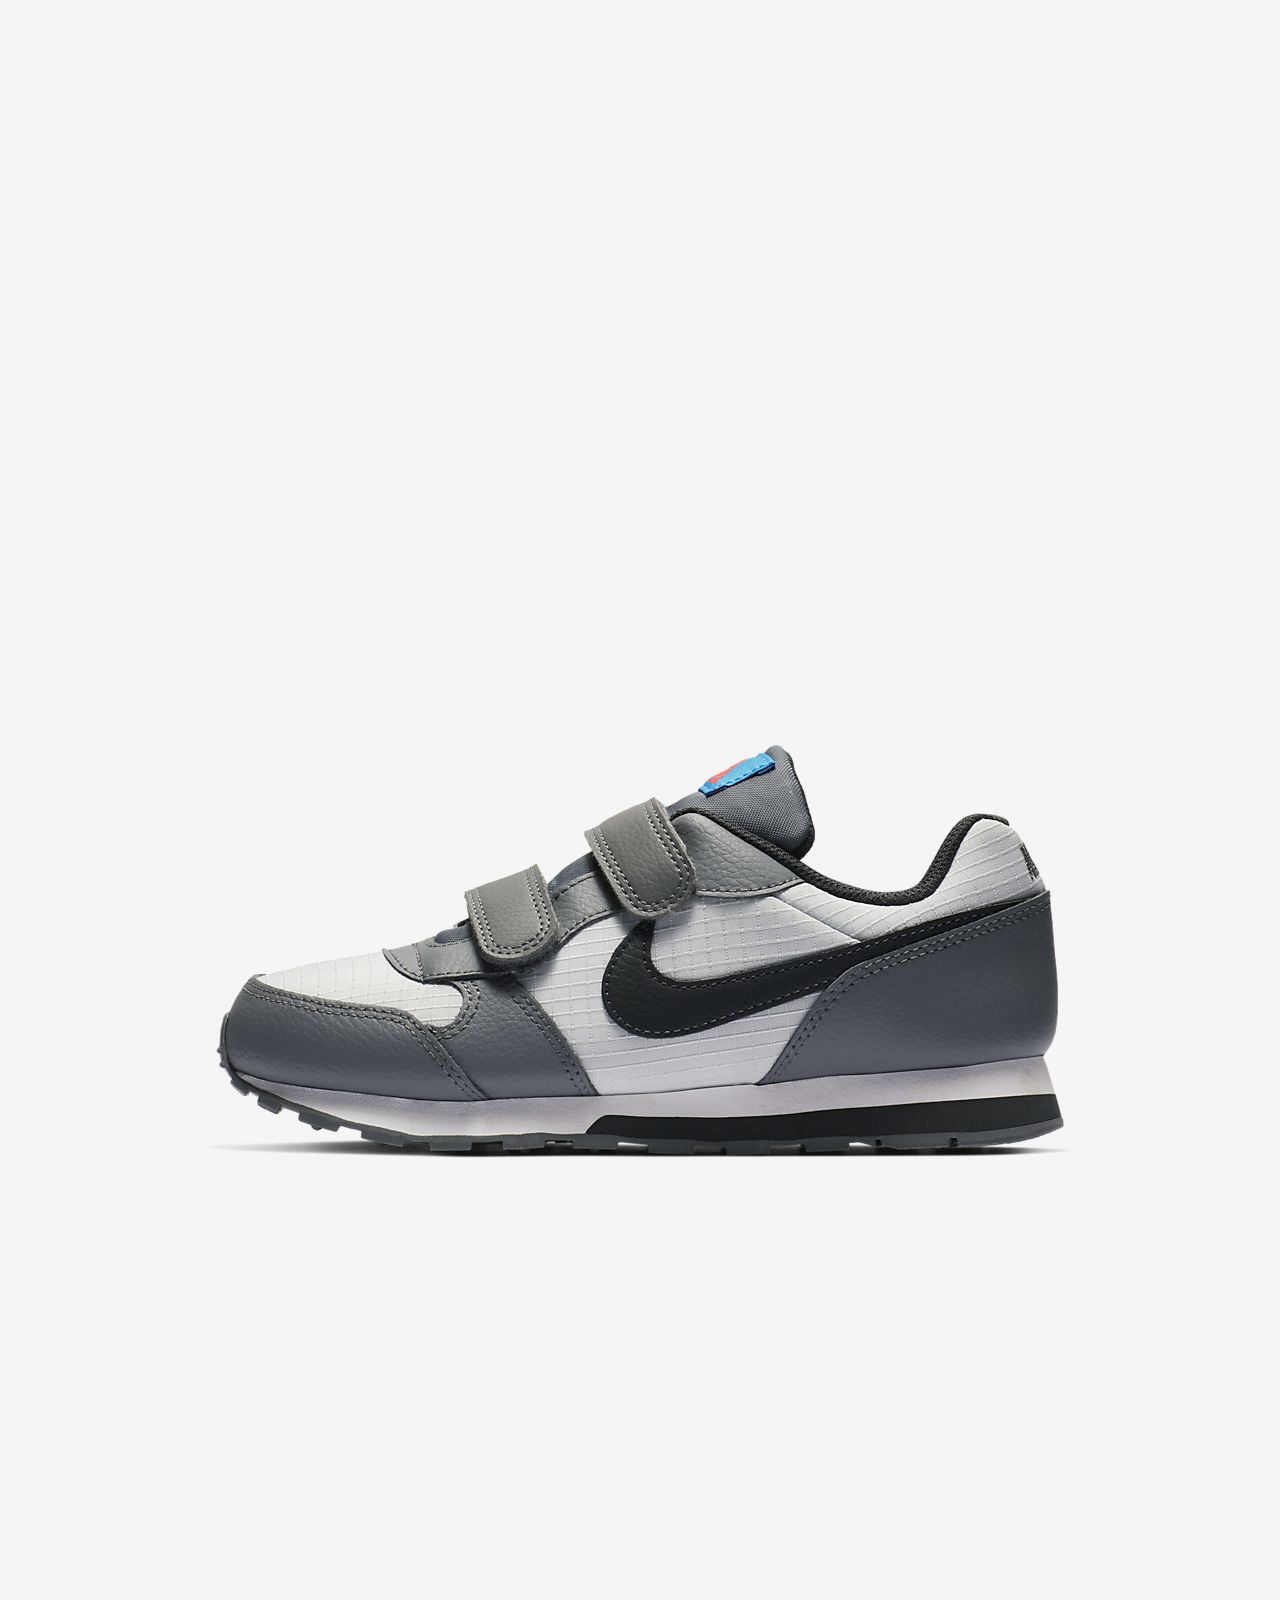 Runner 2 Nike Chaussure Md Pour Enfant Jeune ukXiOPZT